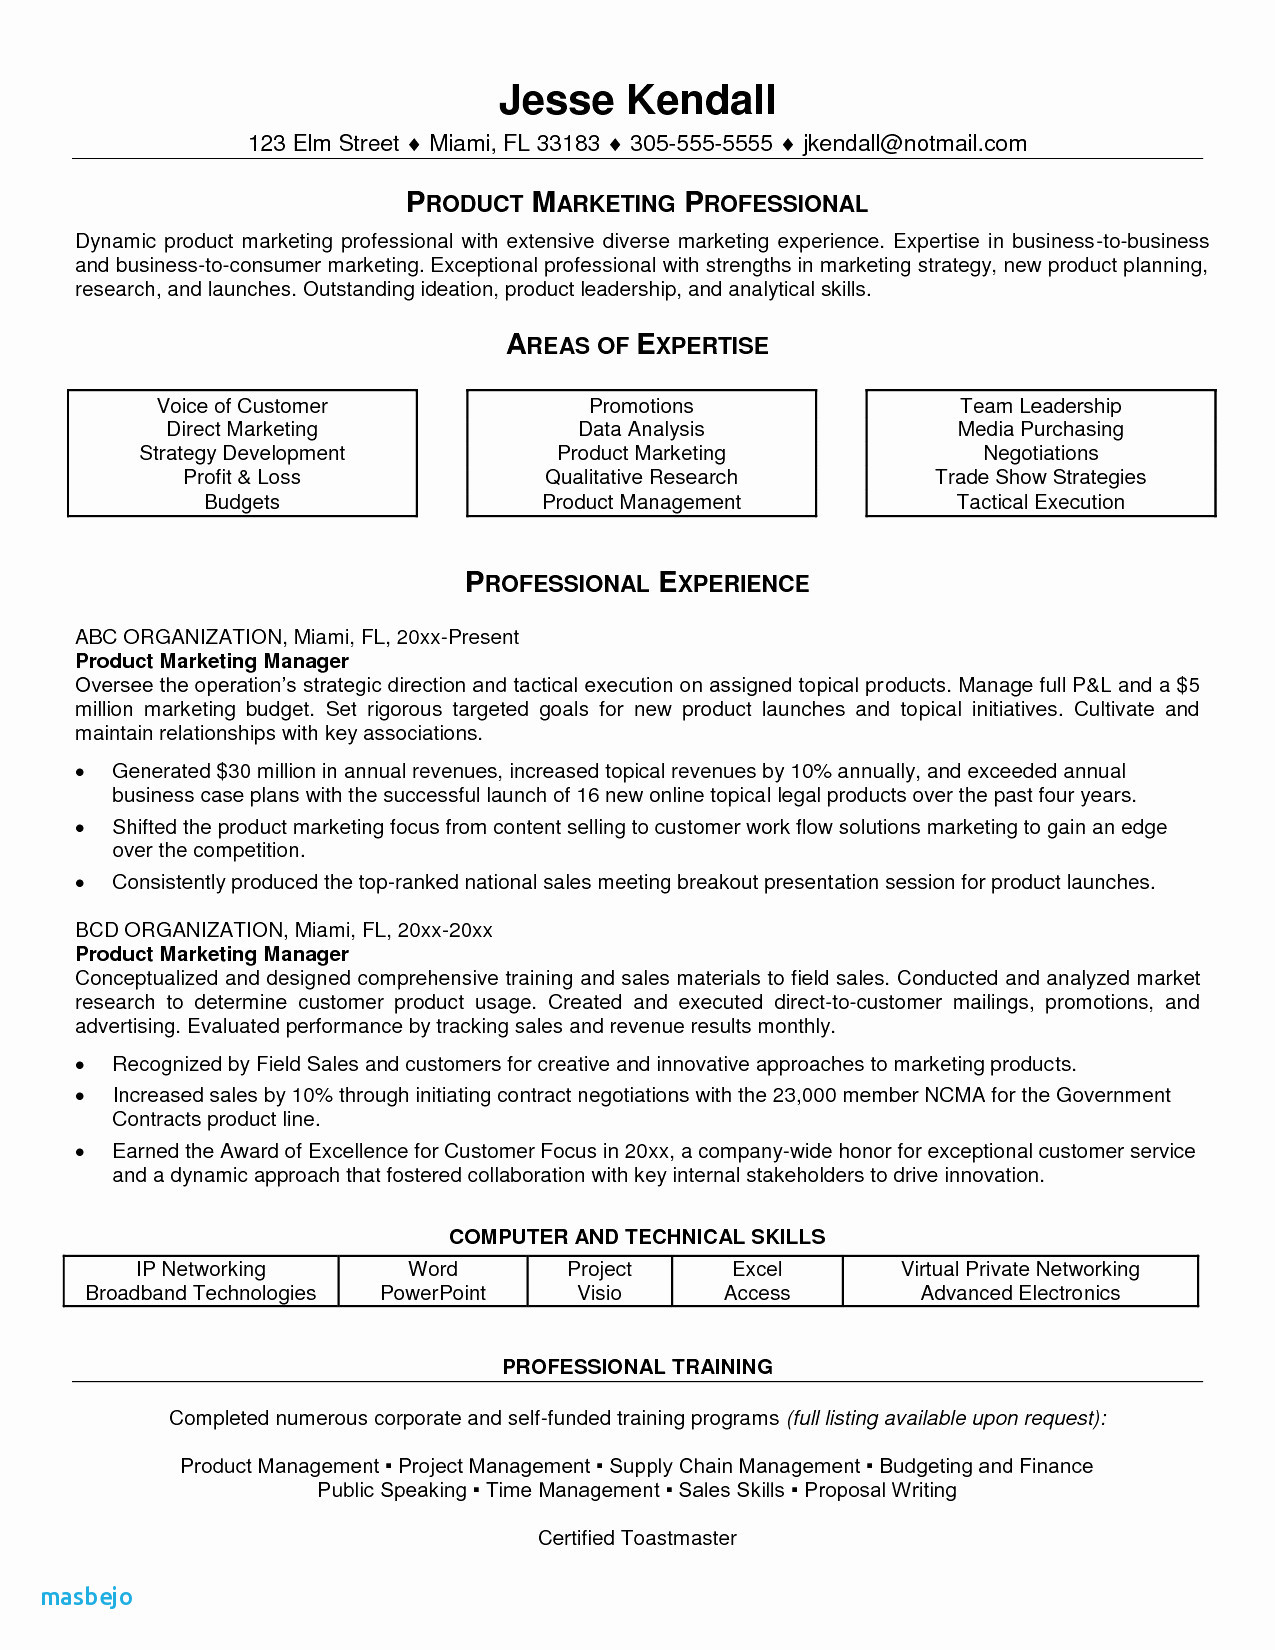 Market Research Interviewer Resume 8 Marketing Skills Resume Samples Resume Database Template